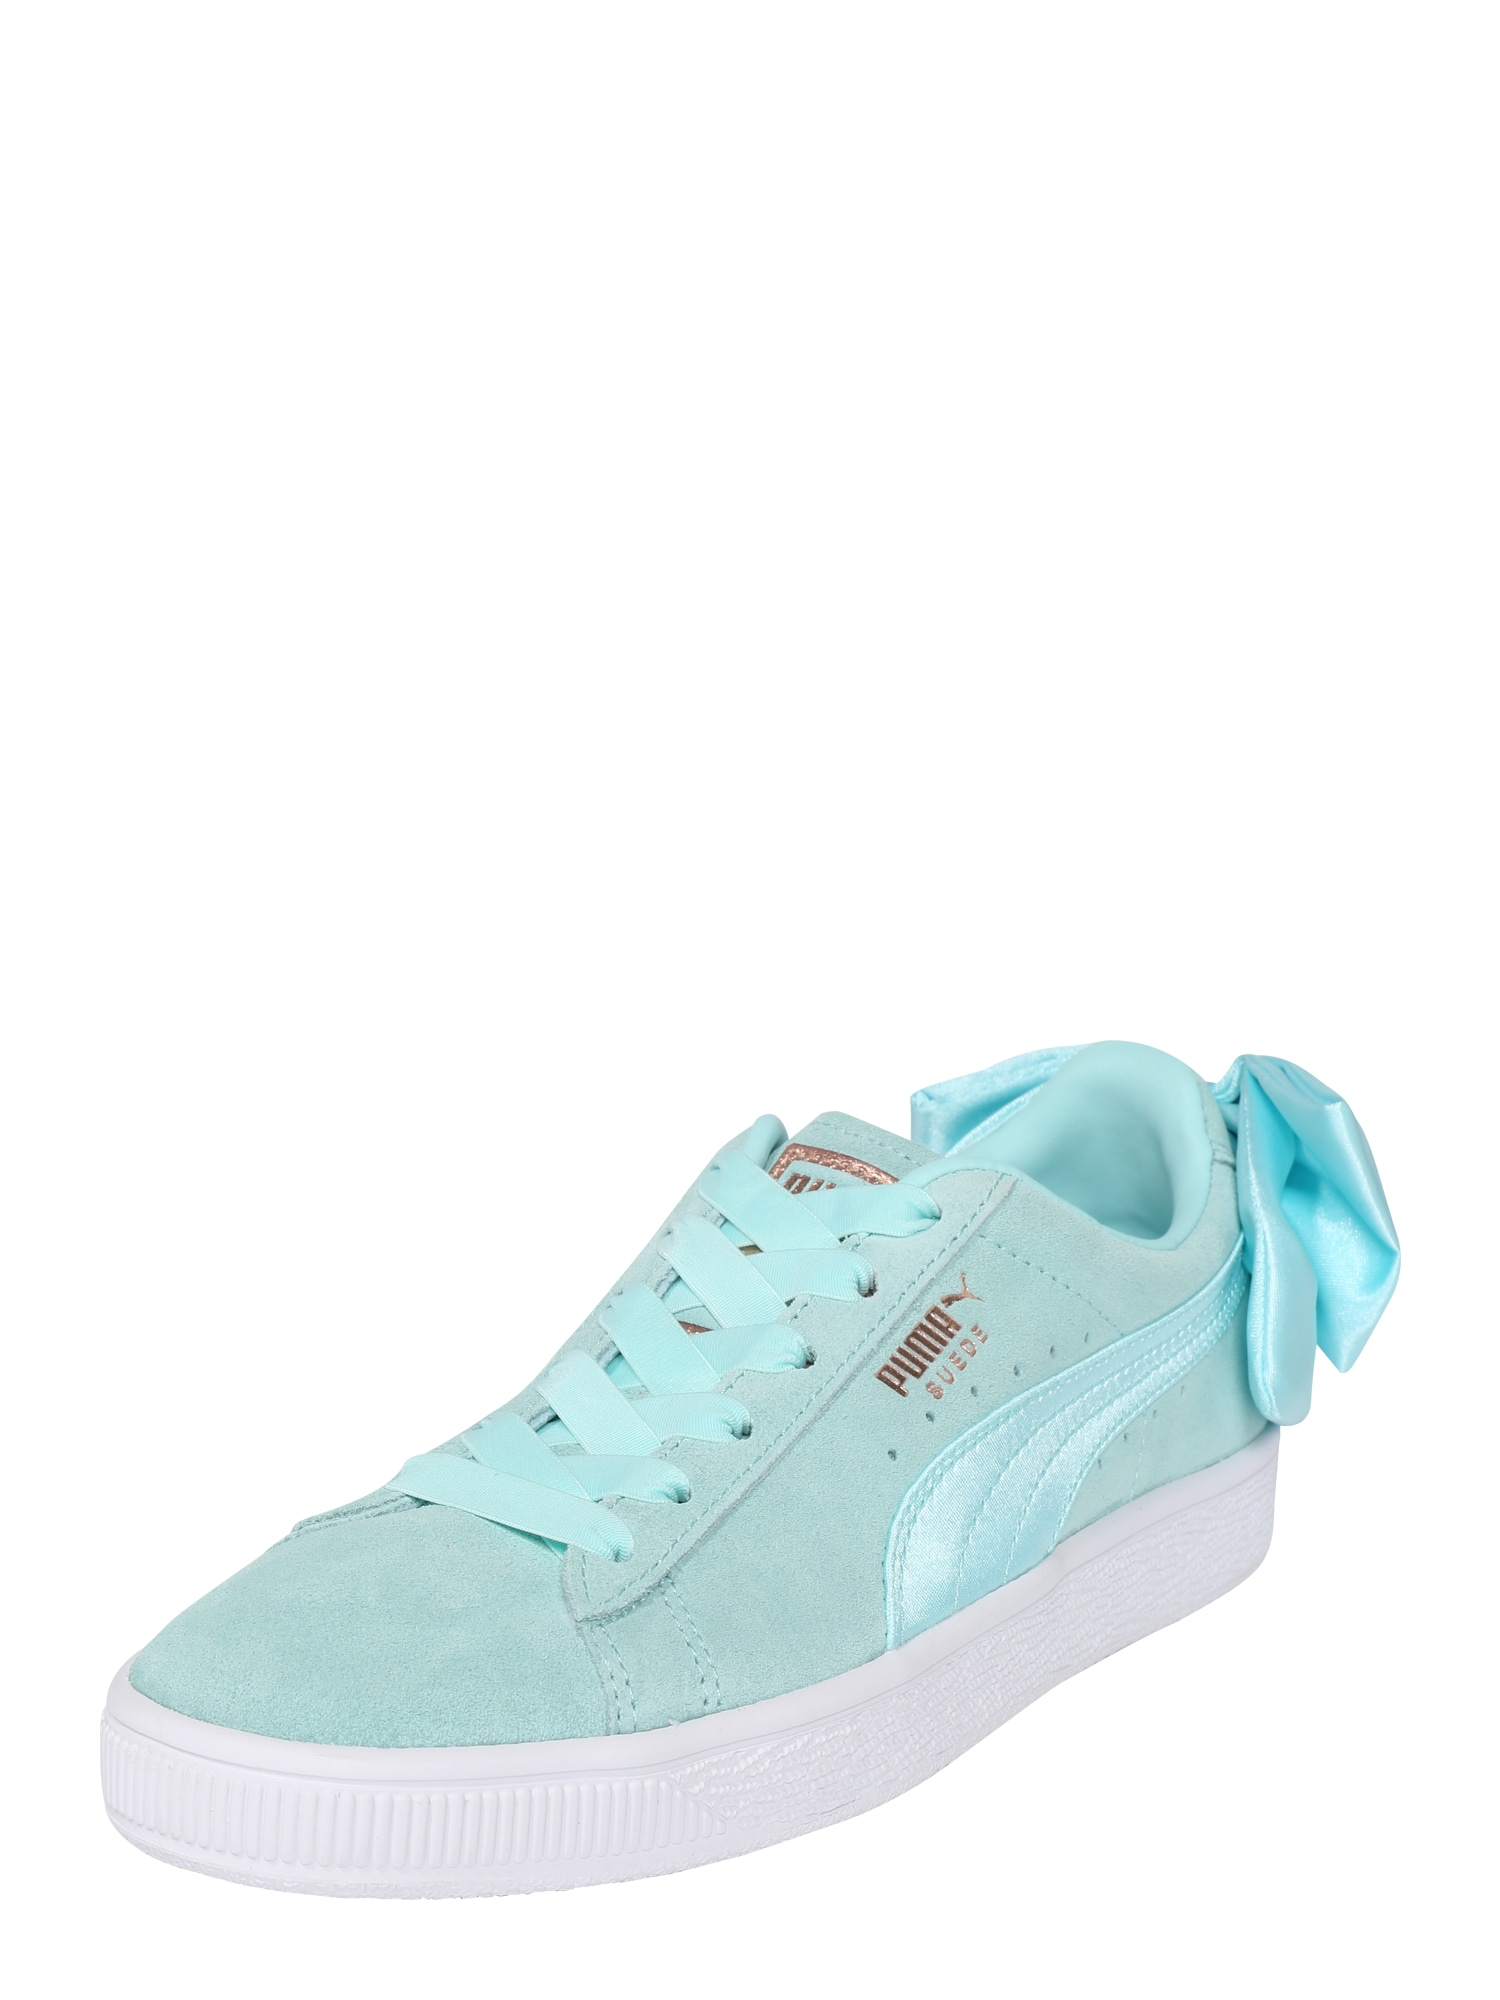 PUMA, Dames Sneakers laag 'Suede Bow', lichtblauw